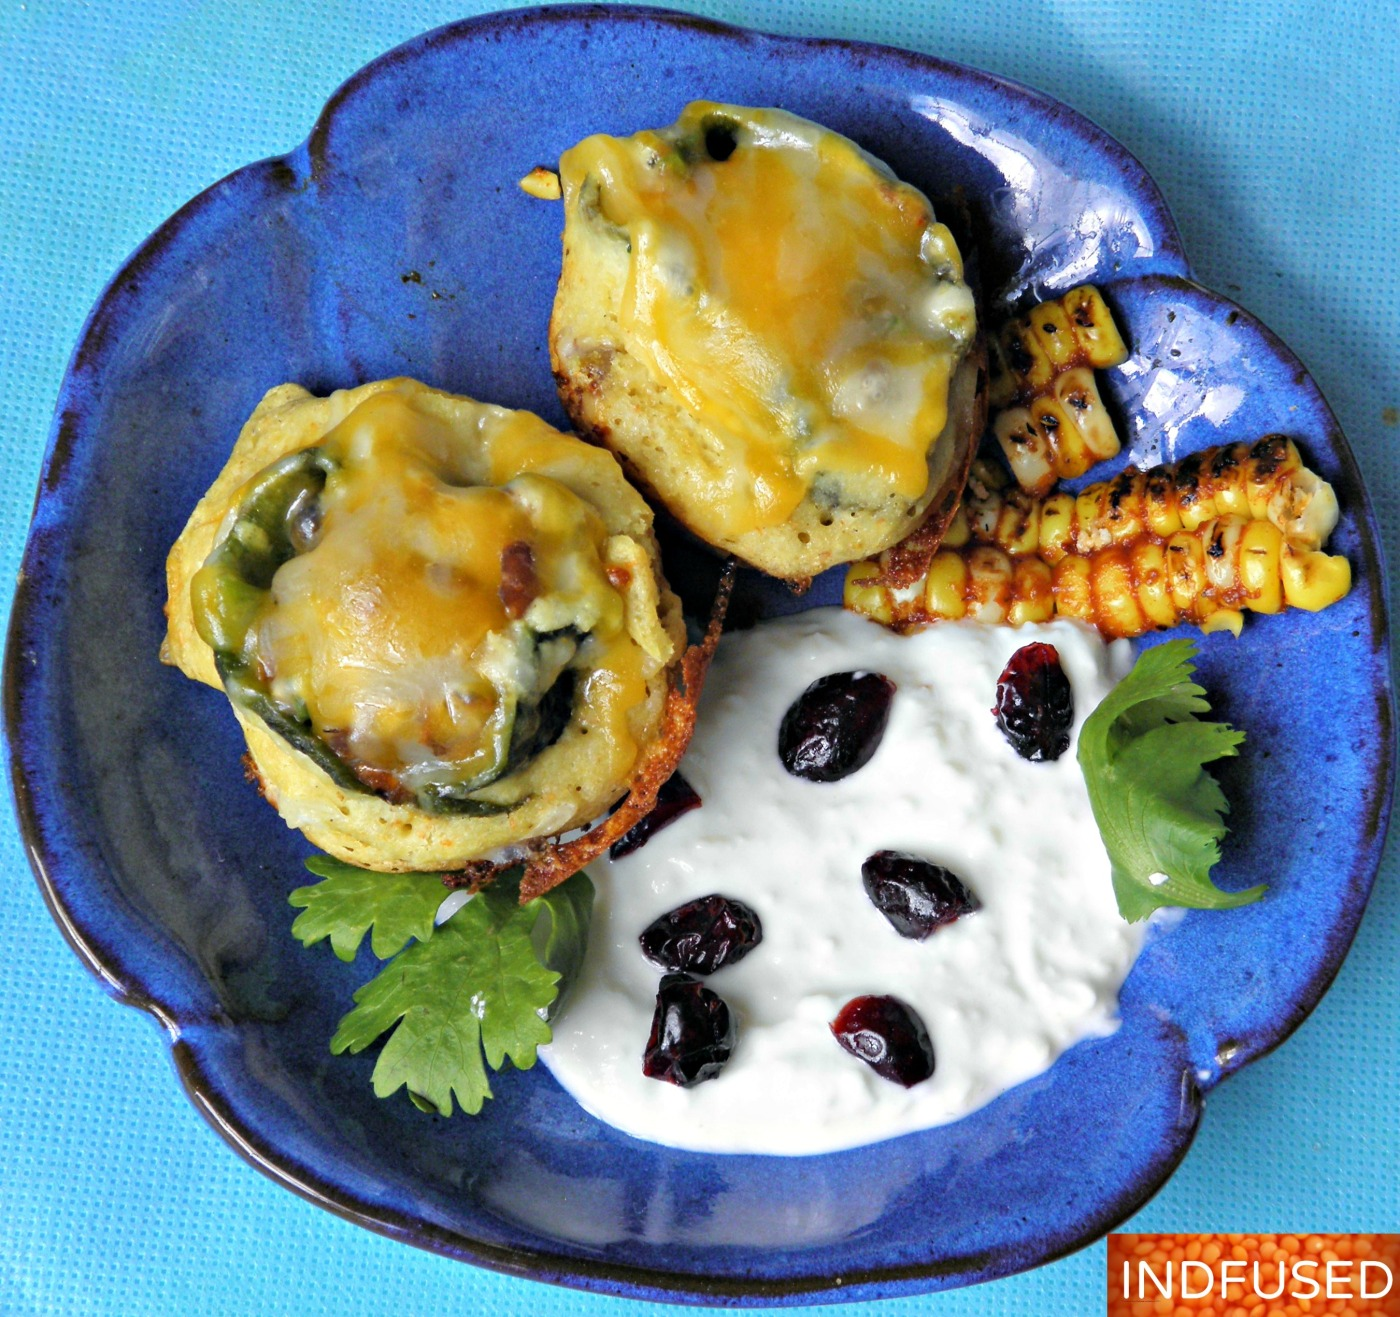 Indian fusion recipe for figure friendly, savory, crispy Chili Rellenos Bocados served with cotija cheese sauce!